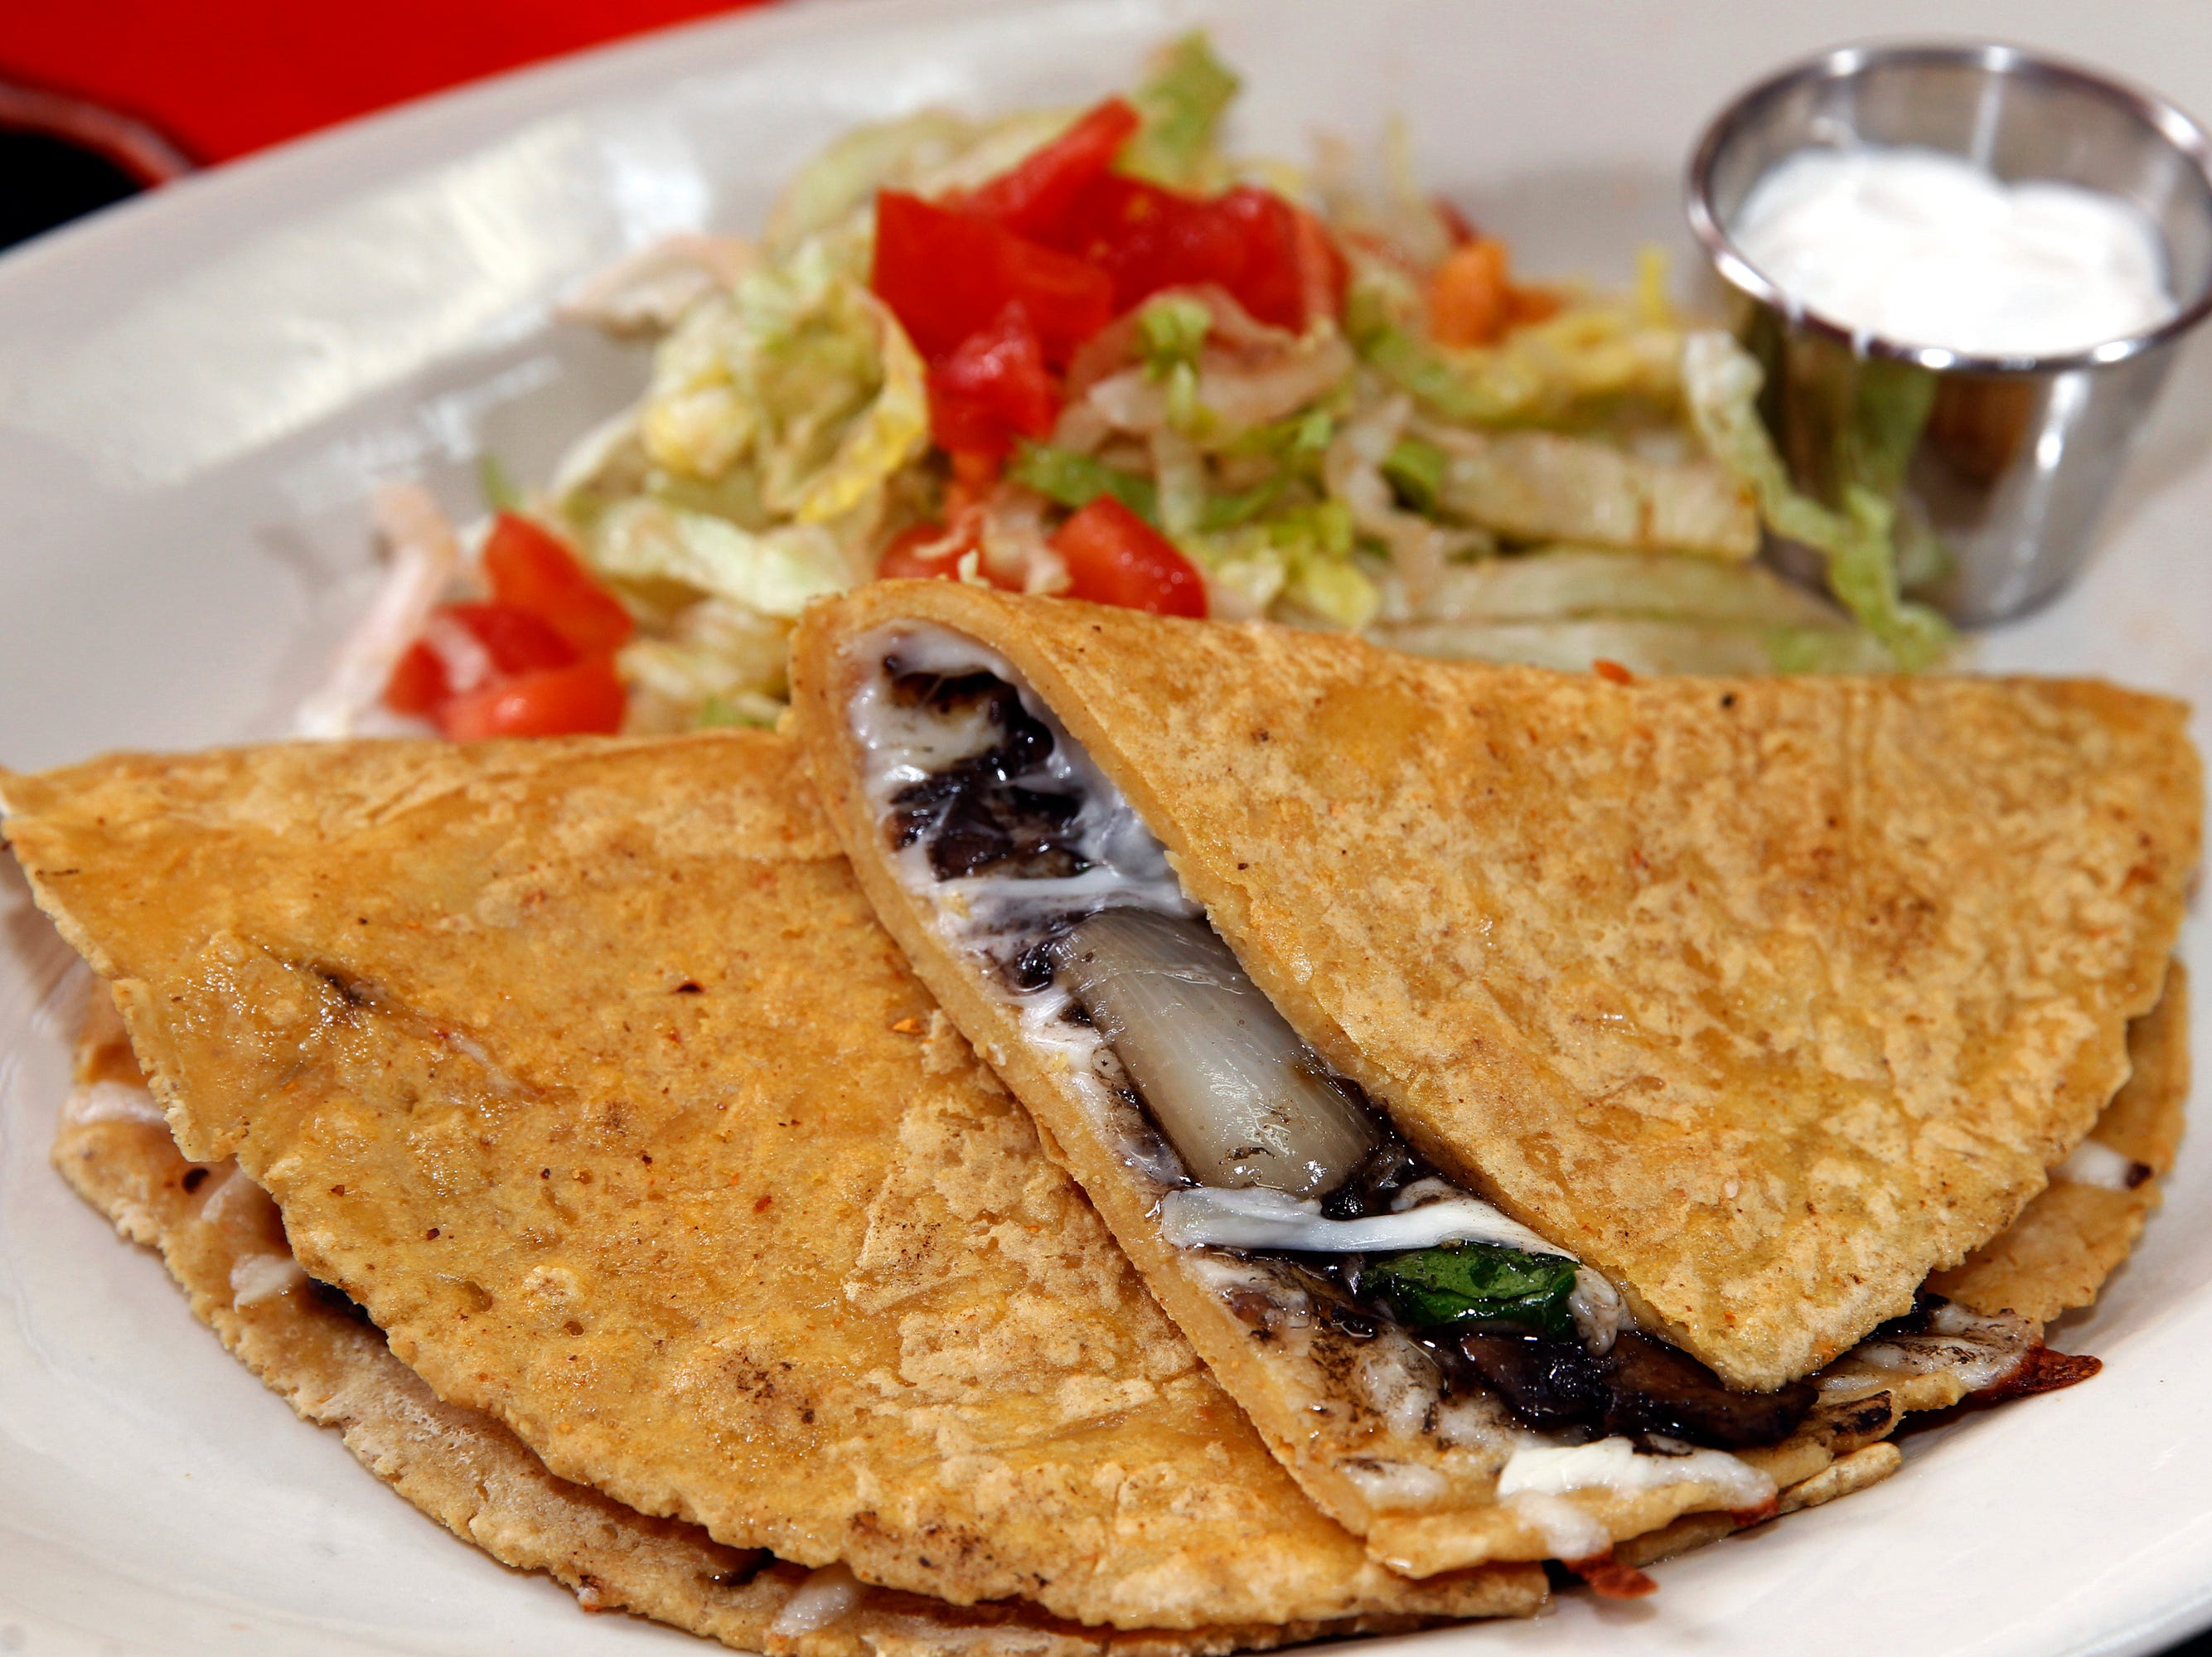 Fillings for handmade quesadillas include huitlacoche, the corn mushroom, at El Tlaxcalteca.